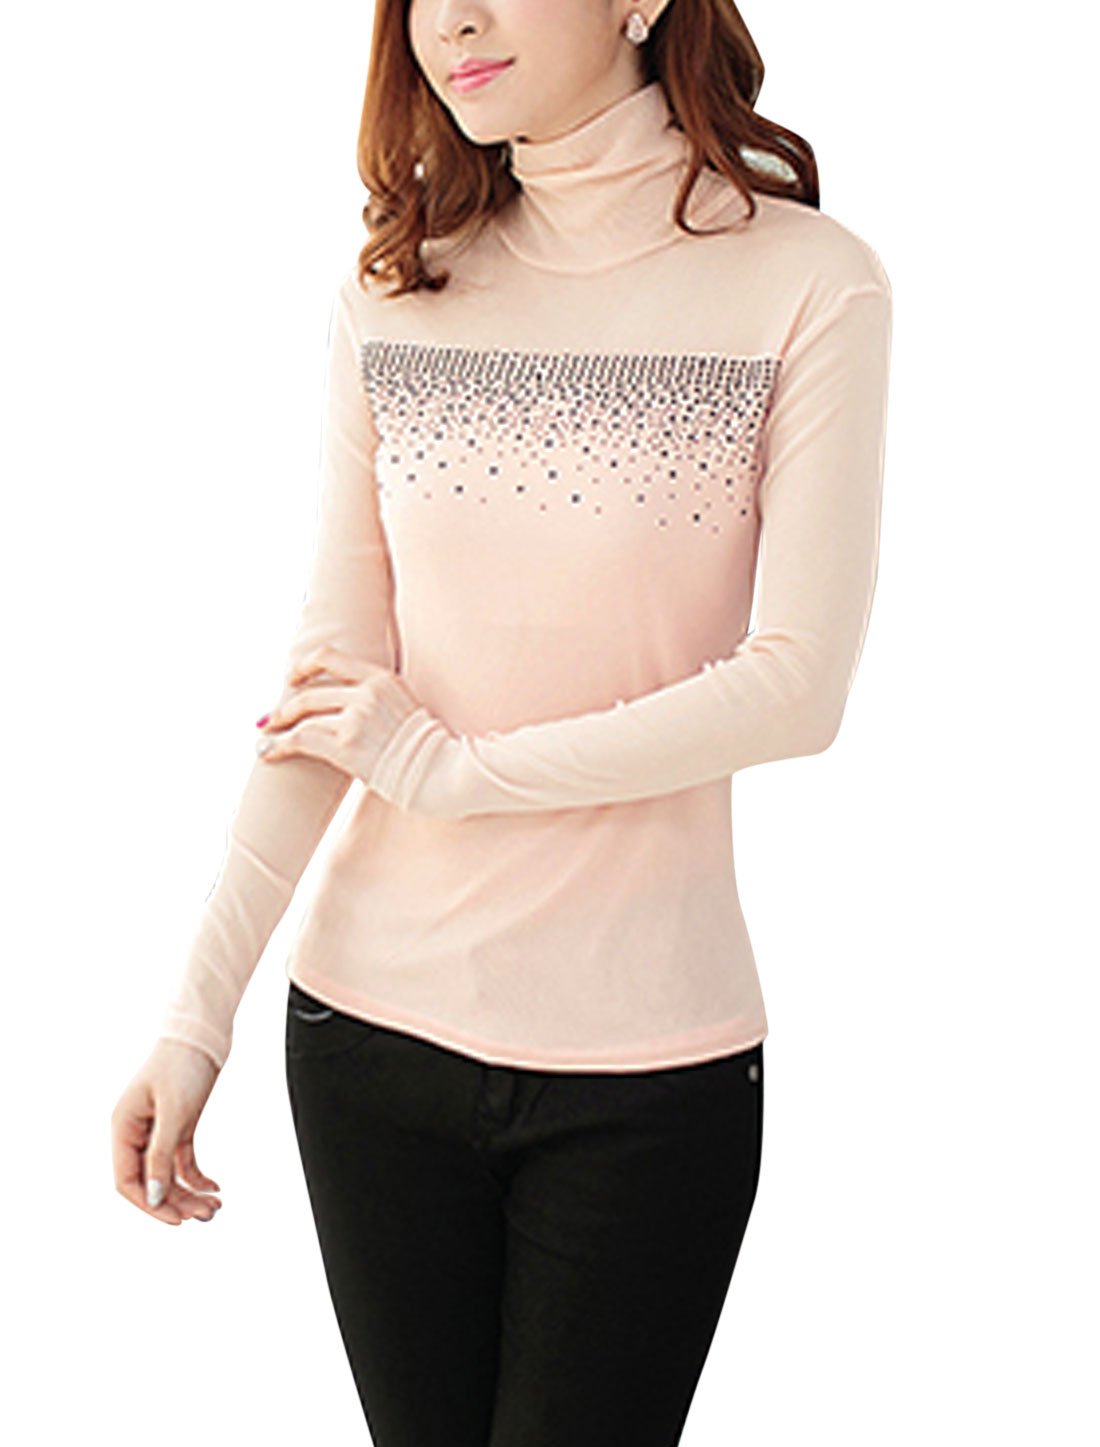 Lady Sweet Style Beaded Embellished Slim Mesh Top Light Pink S